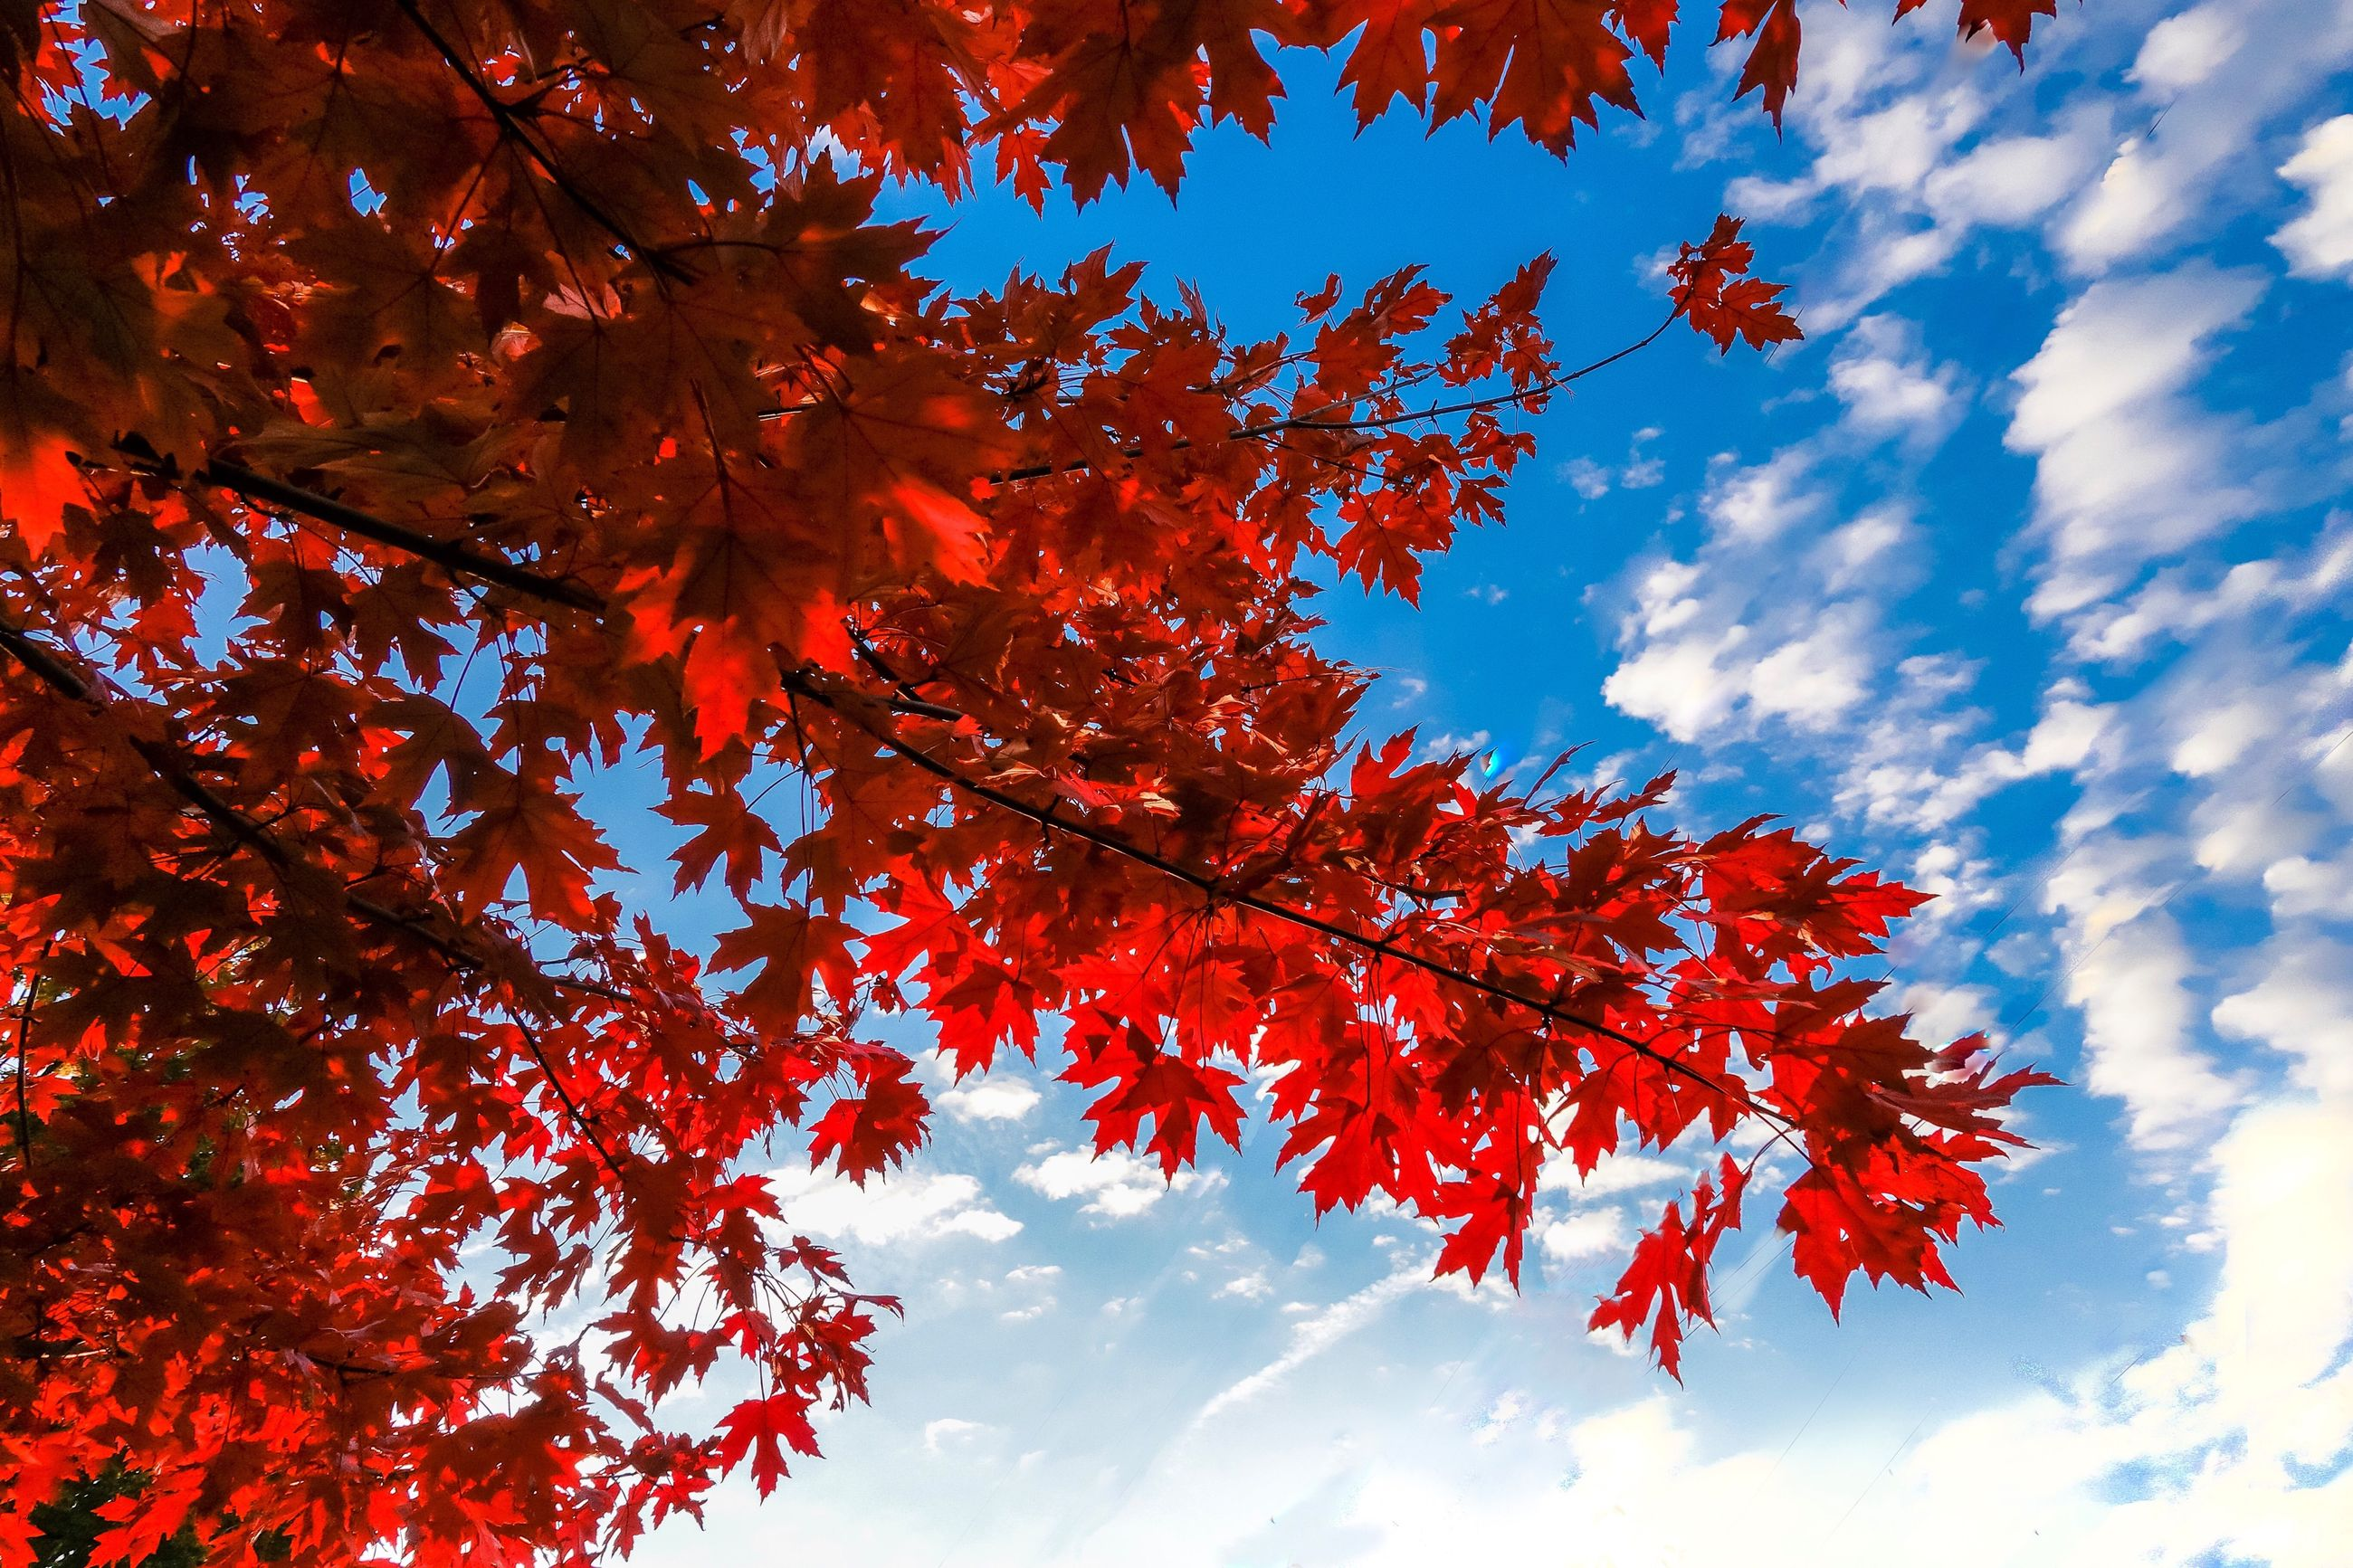 autumn, tree, plant, leaf, beauty in nature, plant part, low angle view, sky, branch, change, growth, cloud - sky, nature, red, day, no people, maple leaf, orange color, maple tree, outdoors, leaves, natural condition, cherry blossom